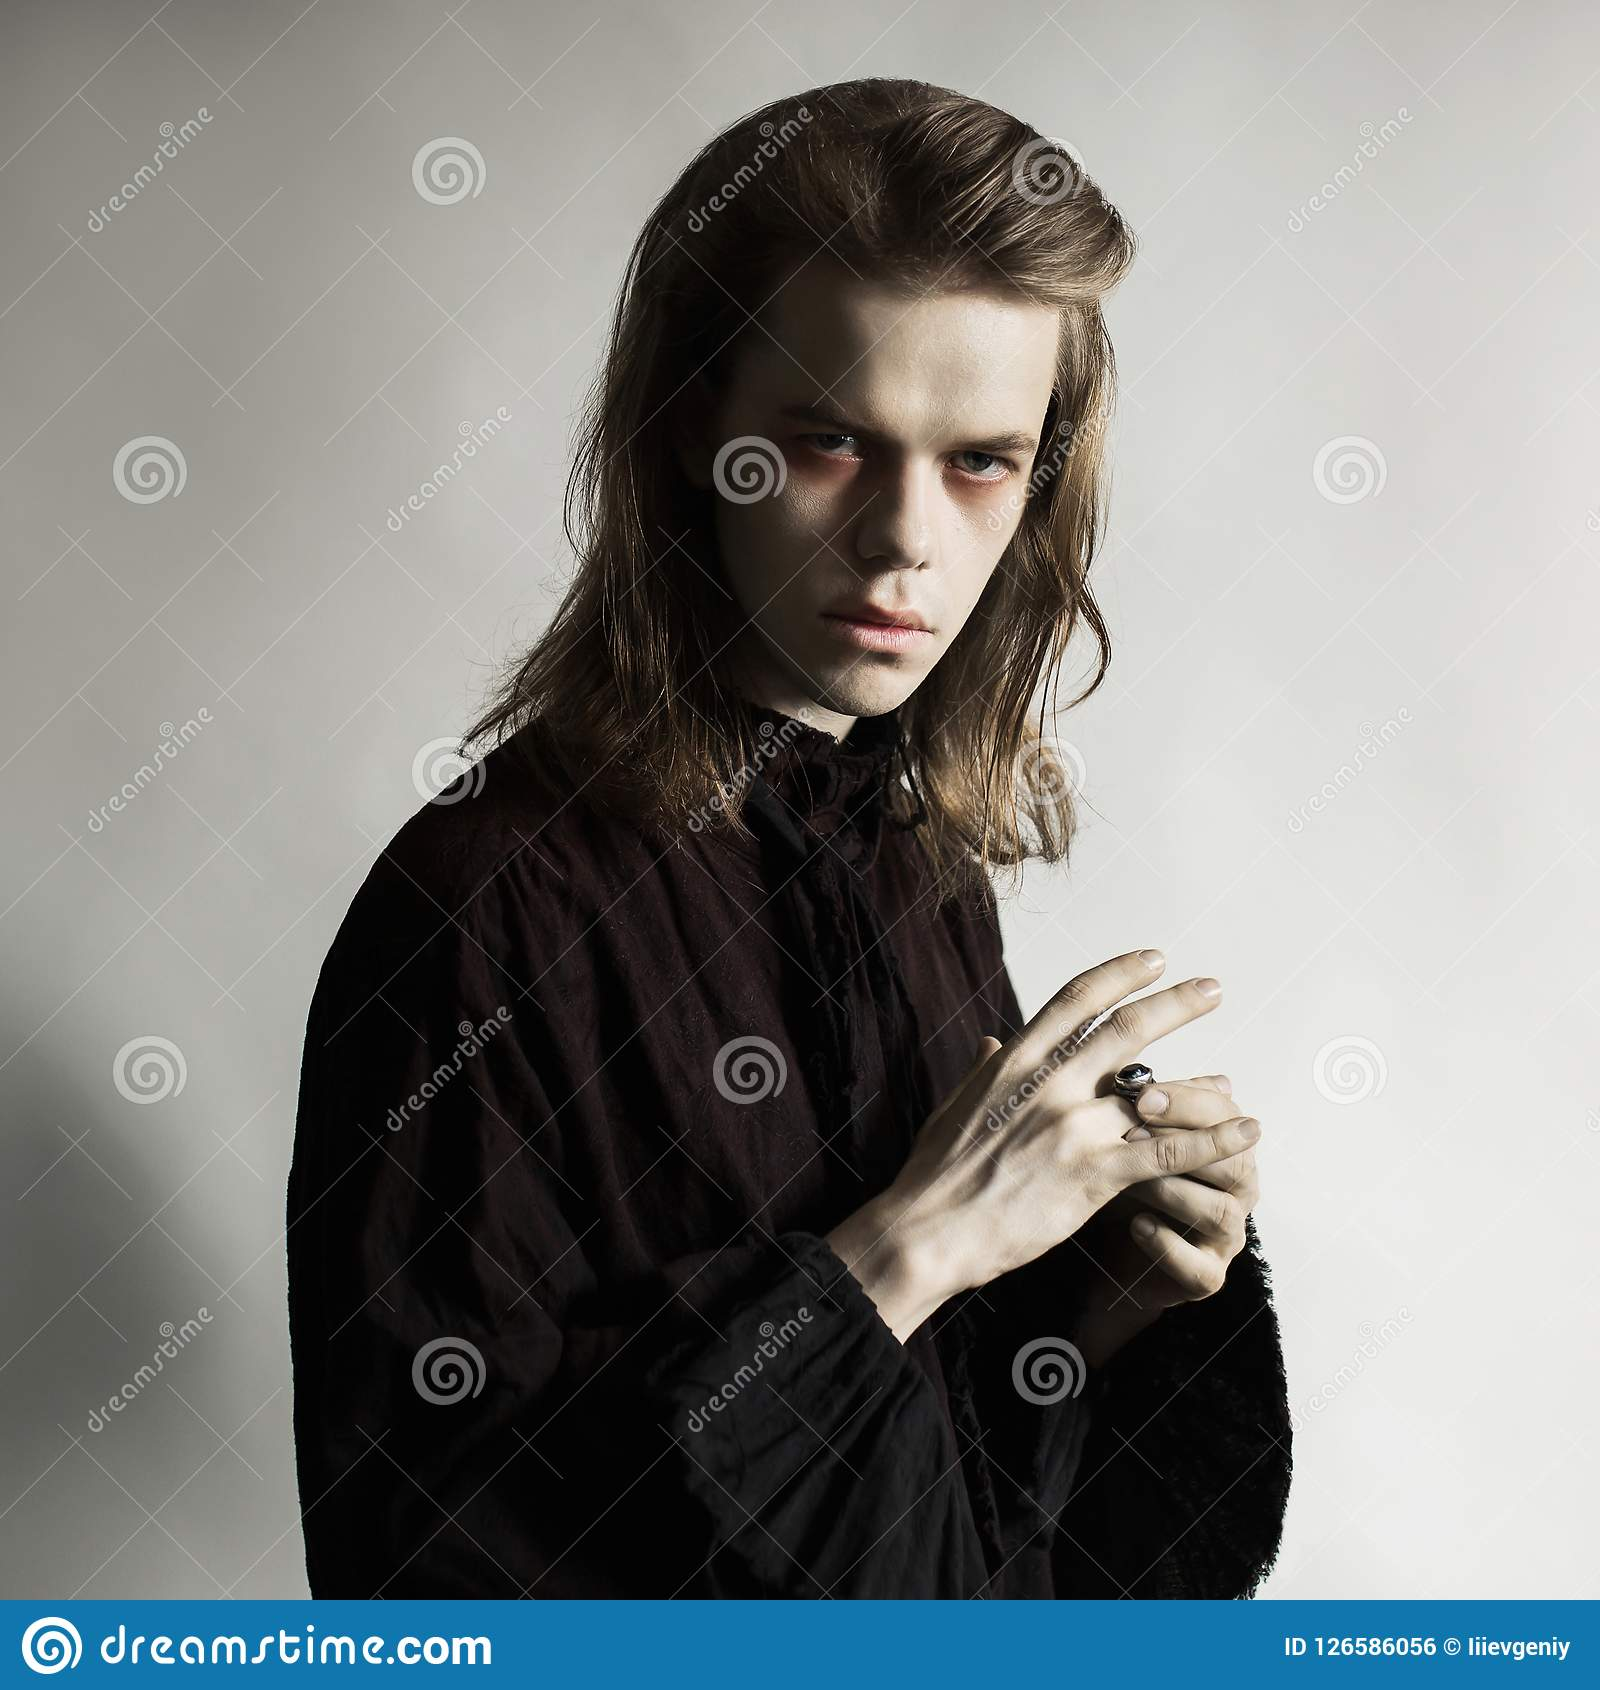 Gothic halloween clothes. Mystical conspiracy. Punk with long hair. Cunning vampire with hairdo. Spooky outfit for halloween party